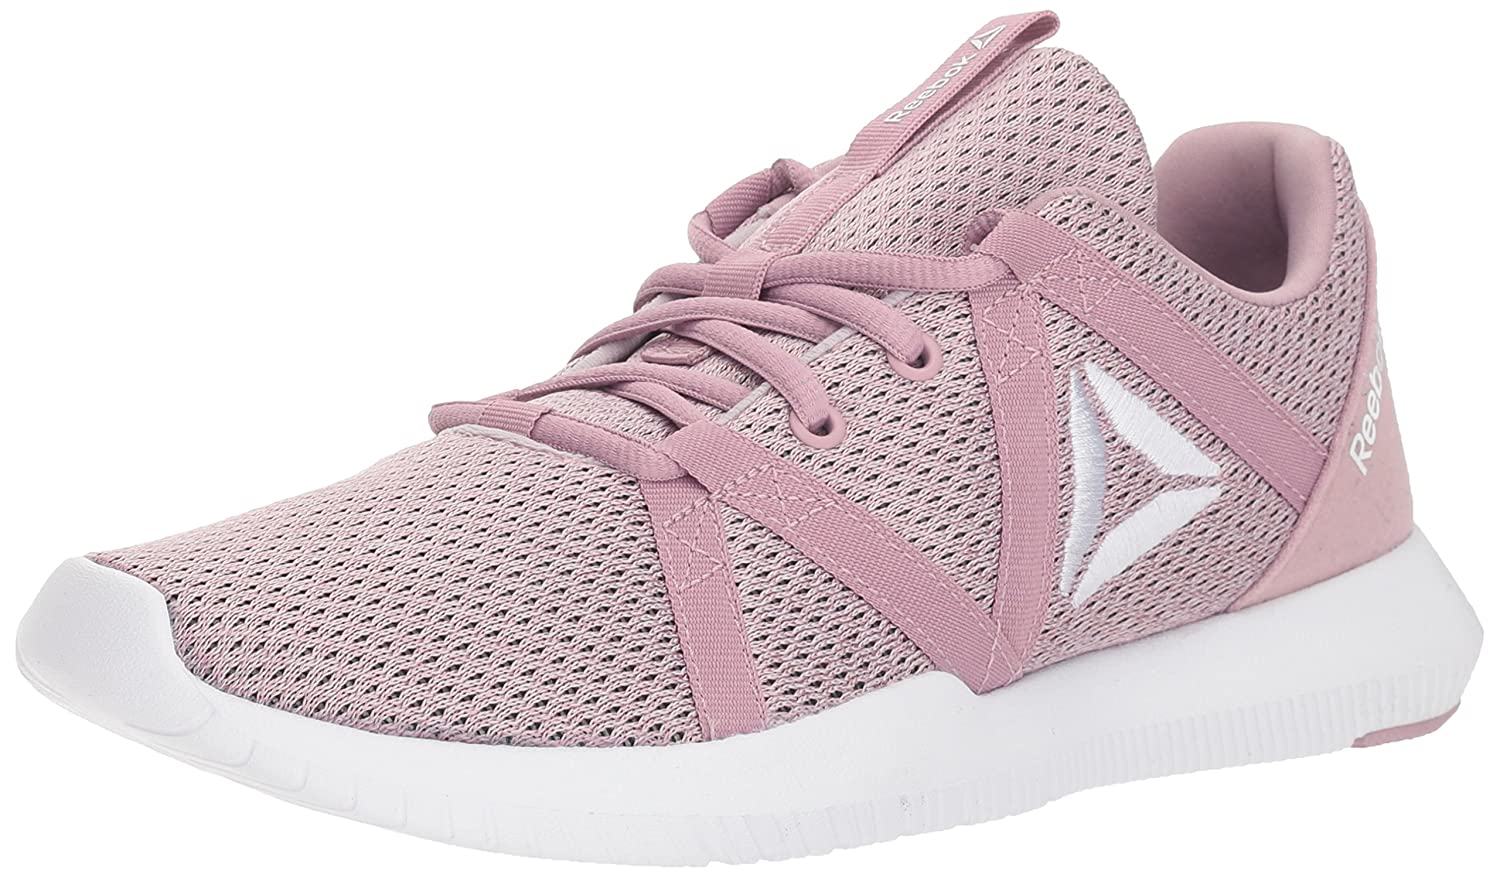 Reebok Women's Reago Essential Cross Trainer